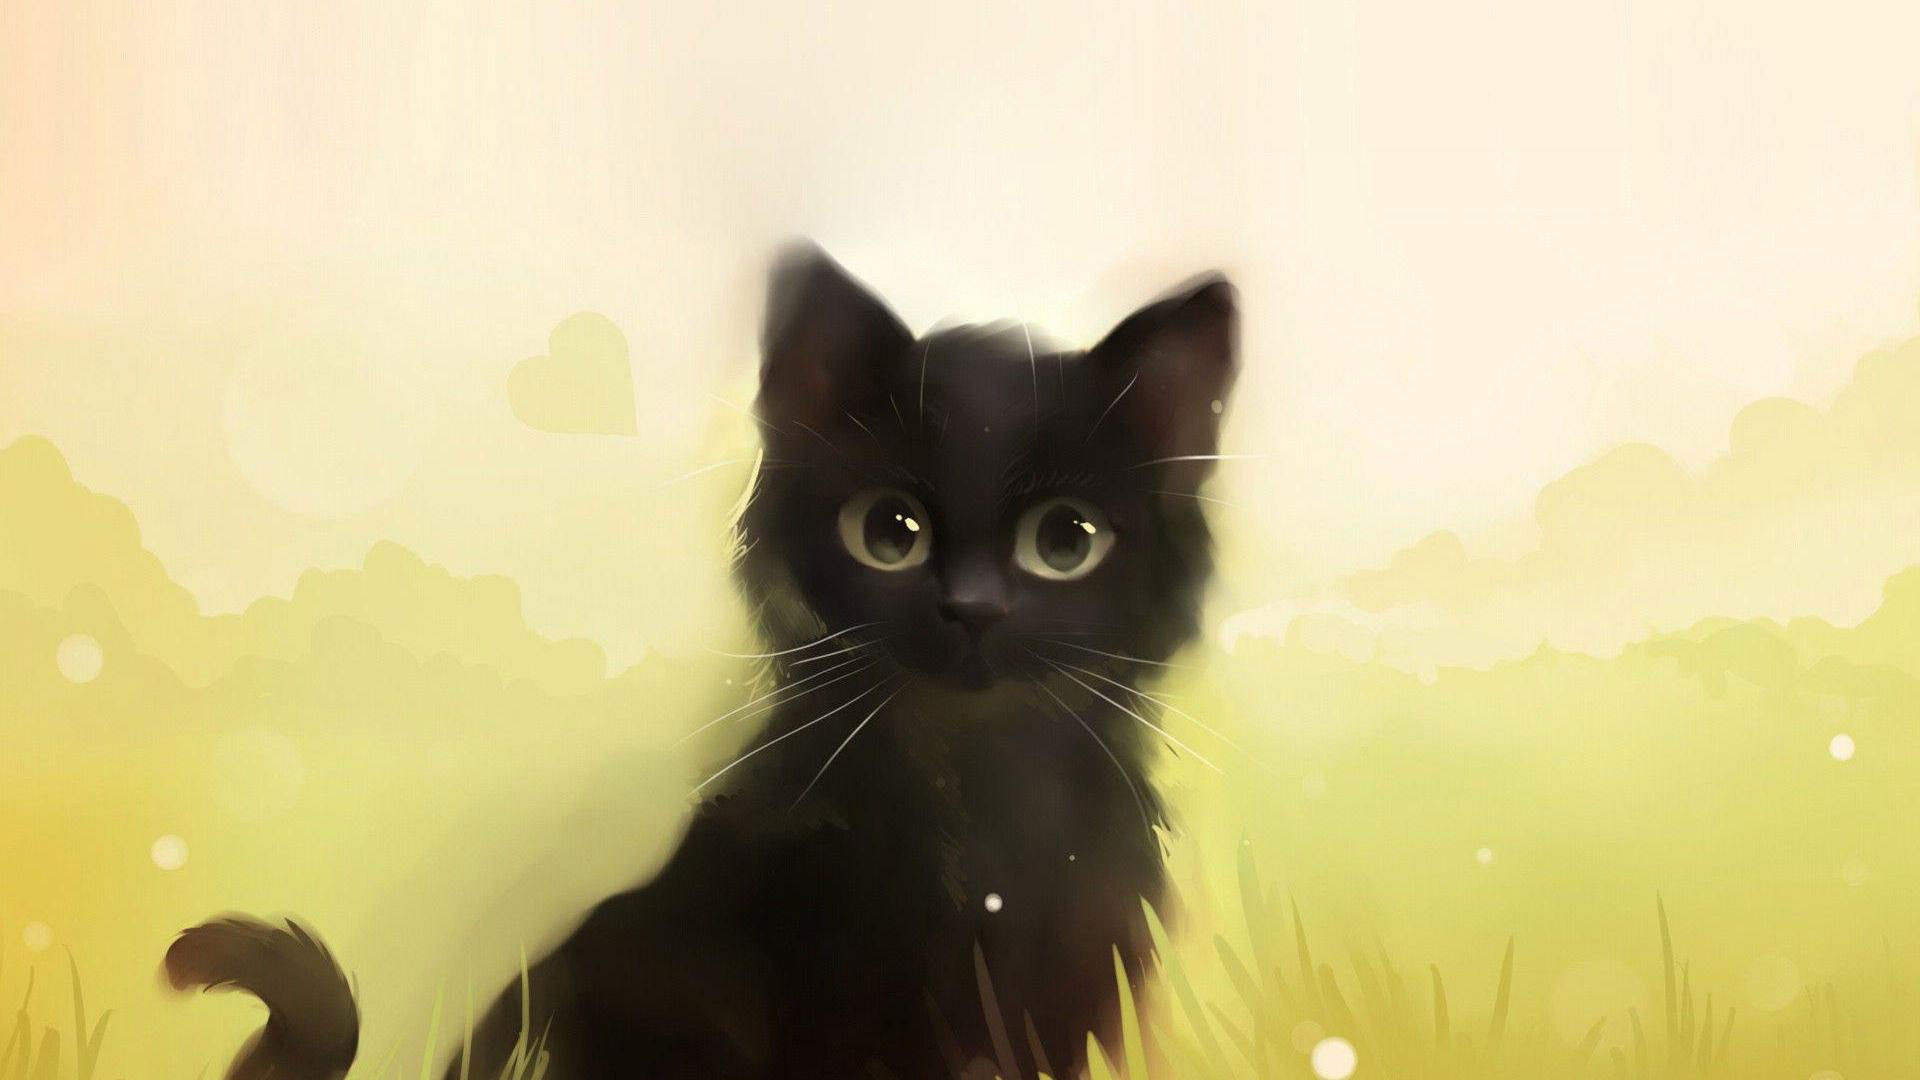 1920x1080 hd pics photos cute black animated black cat hd quality desktop background  wallpaper